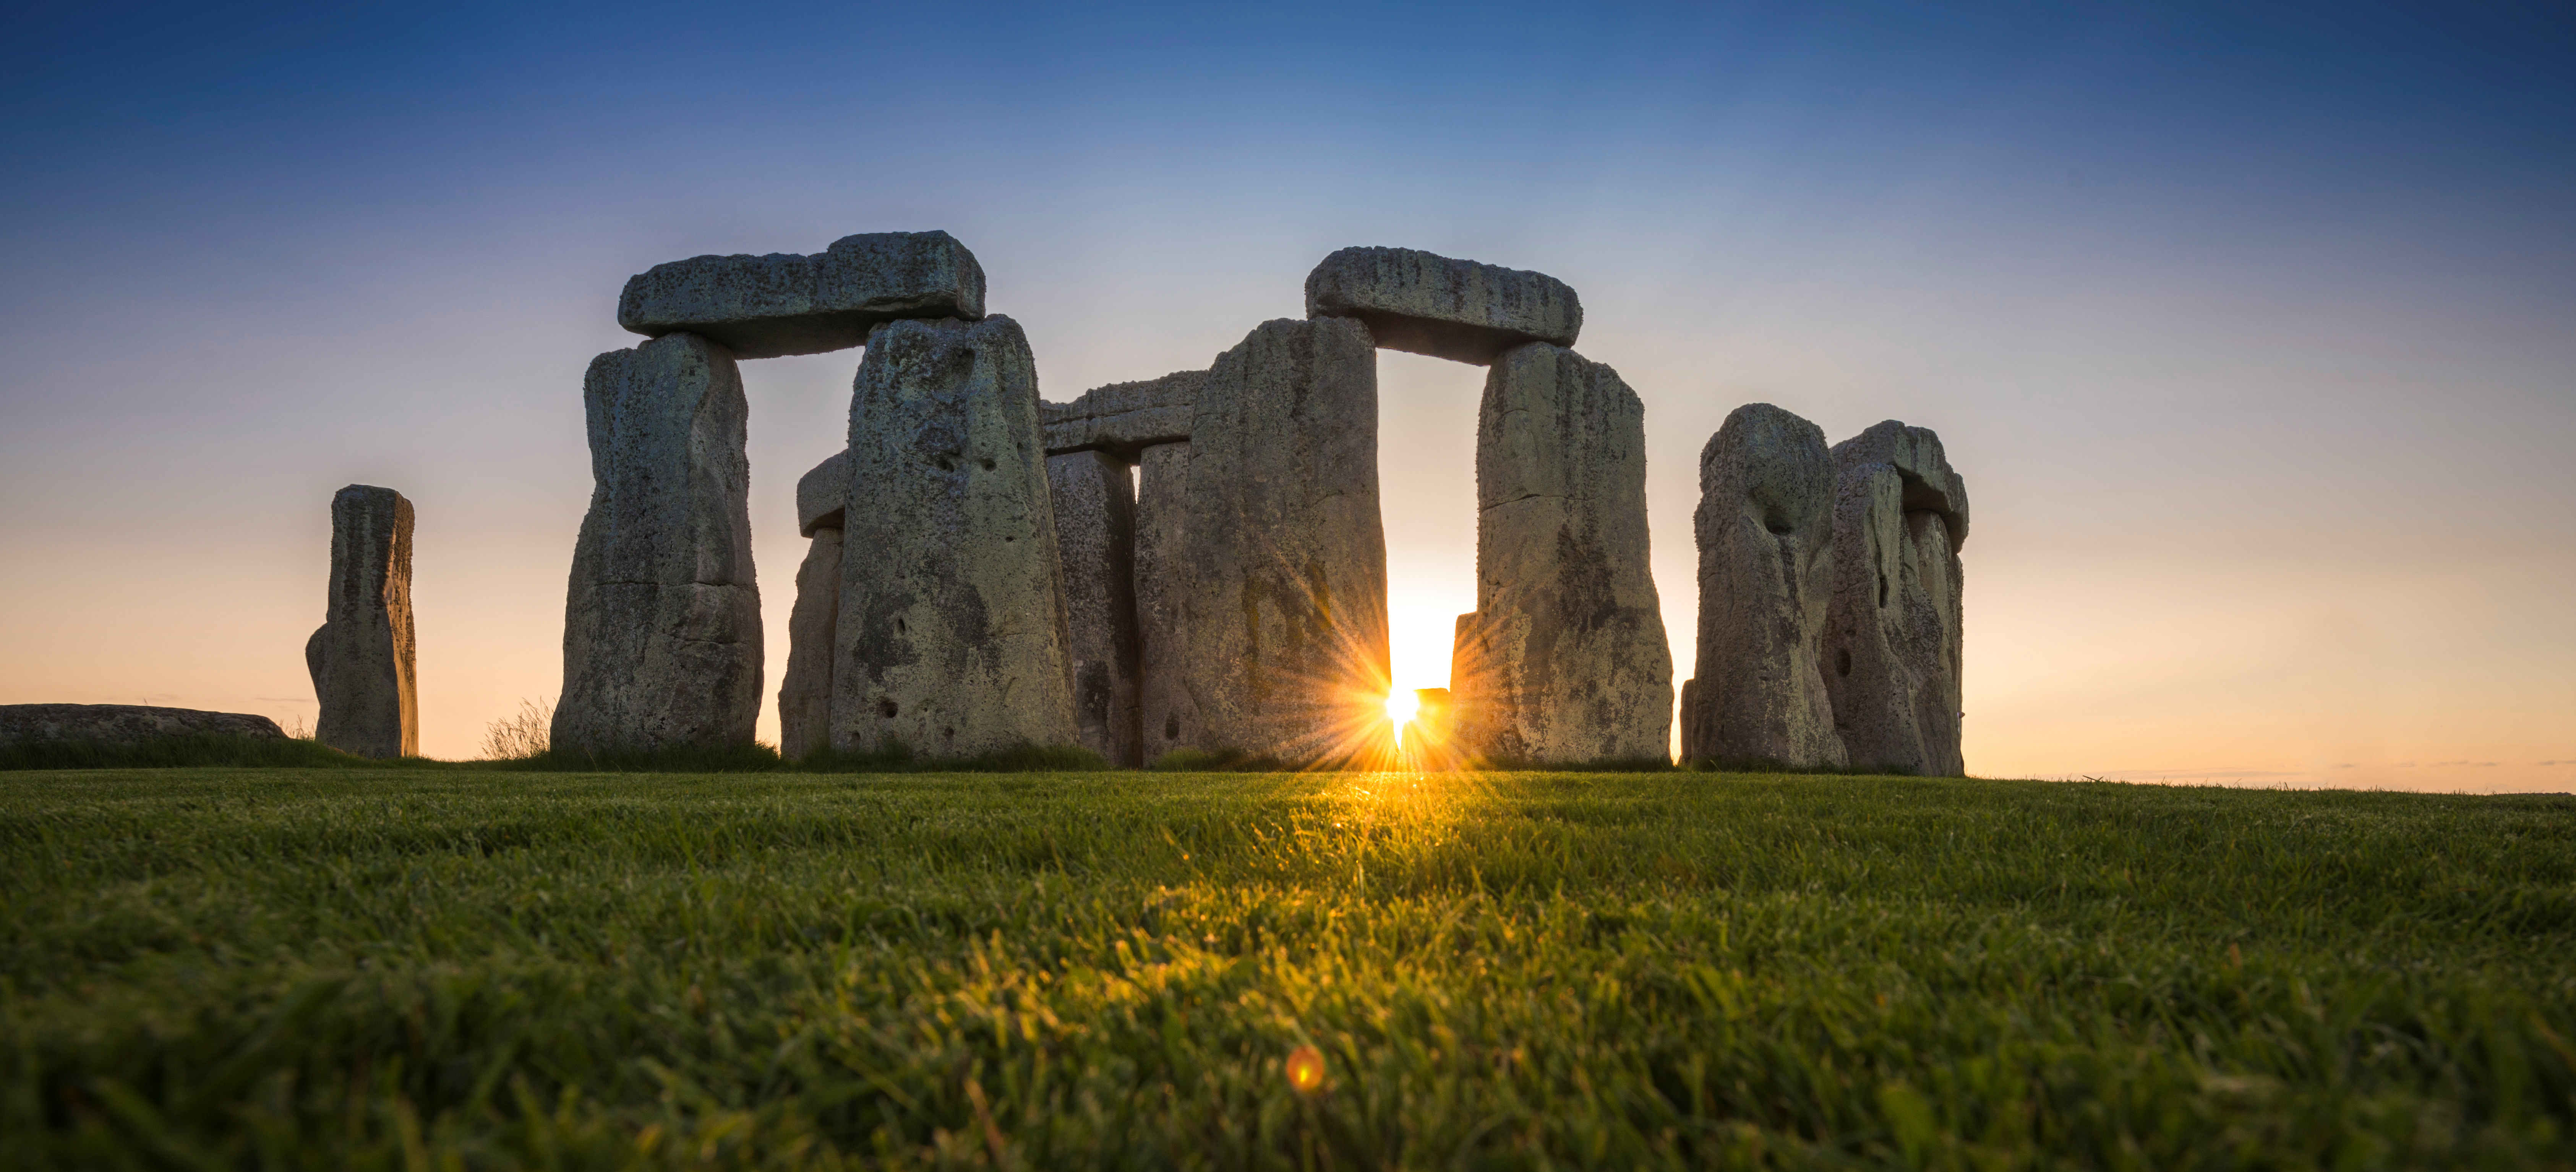 General view of the Stonehenge stone circle during the sunset, near Amesbury, Britain, as seen in this undated image provided to Reuters on July 29, 2020. English Heritage/A.Pattenden/Handout via REUTERS